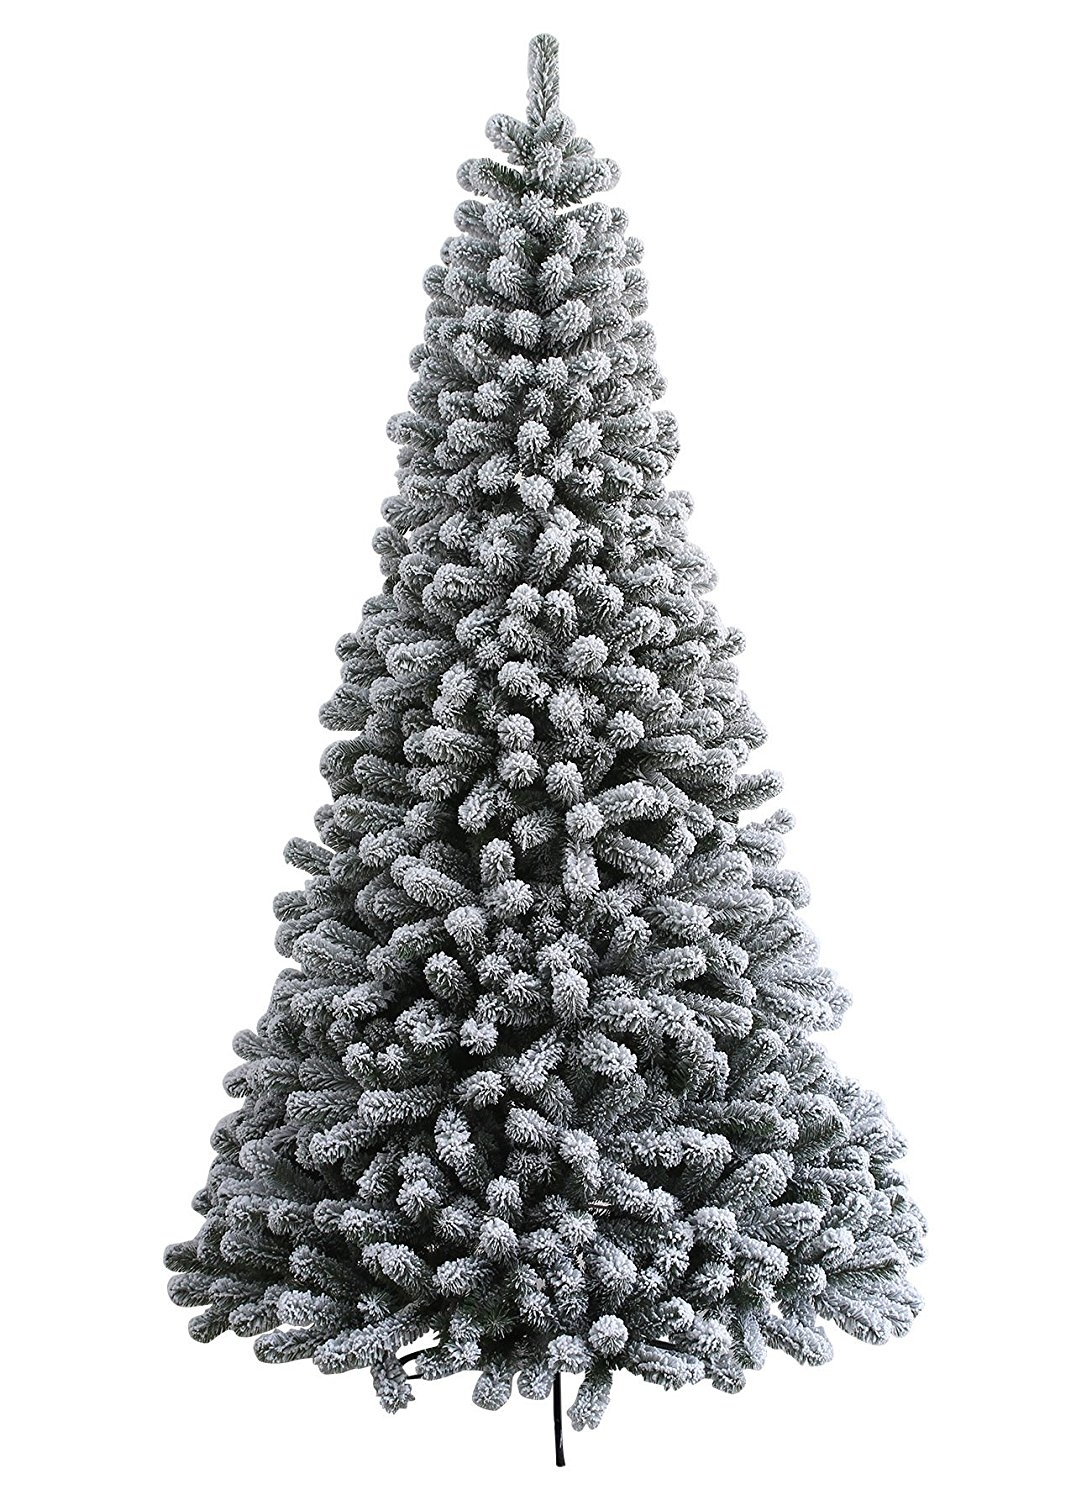 12 Artificial Christmas Trees That Look Like The Real